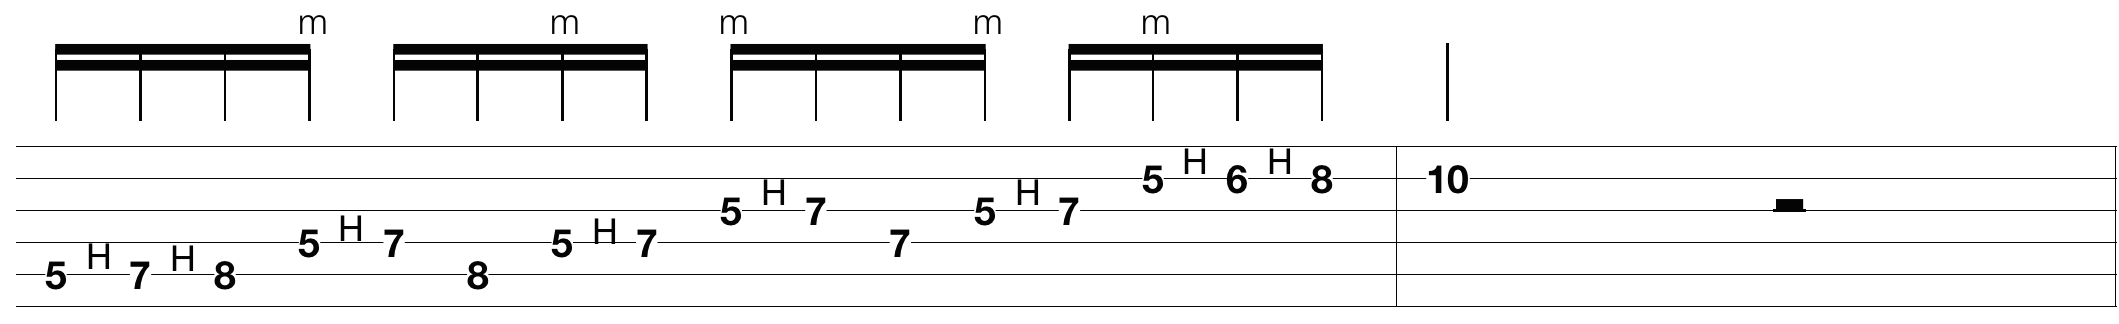 guitar-solo-tips_2.png